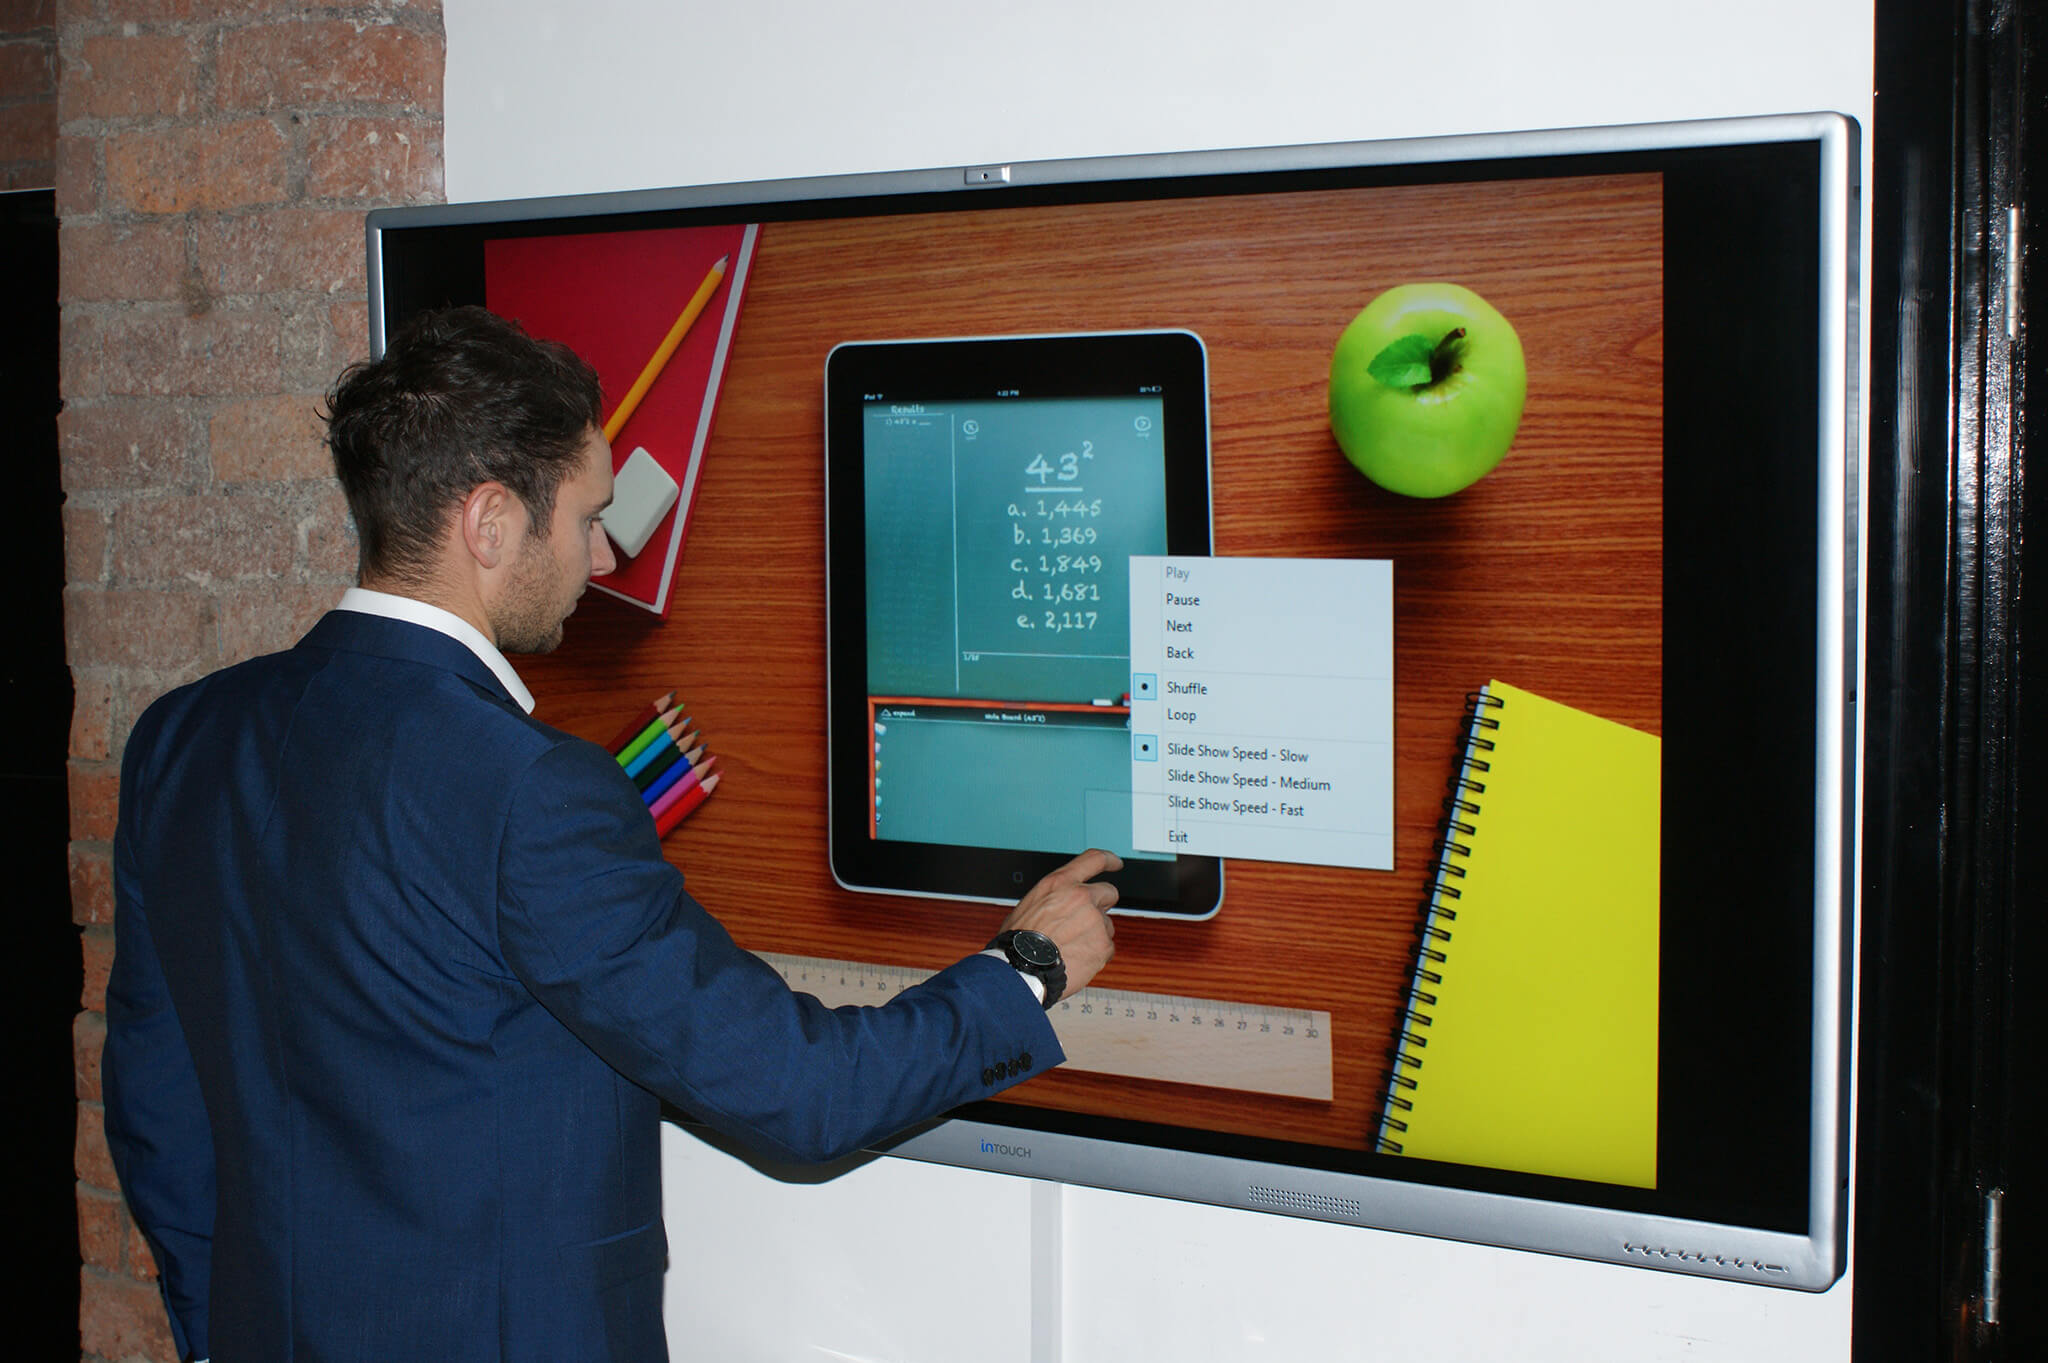 interactive-touch-monitor-schools.jpg